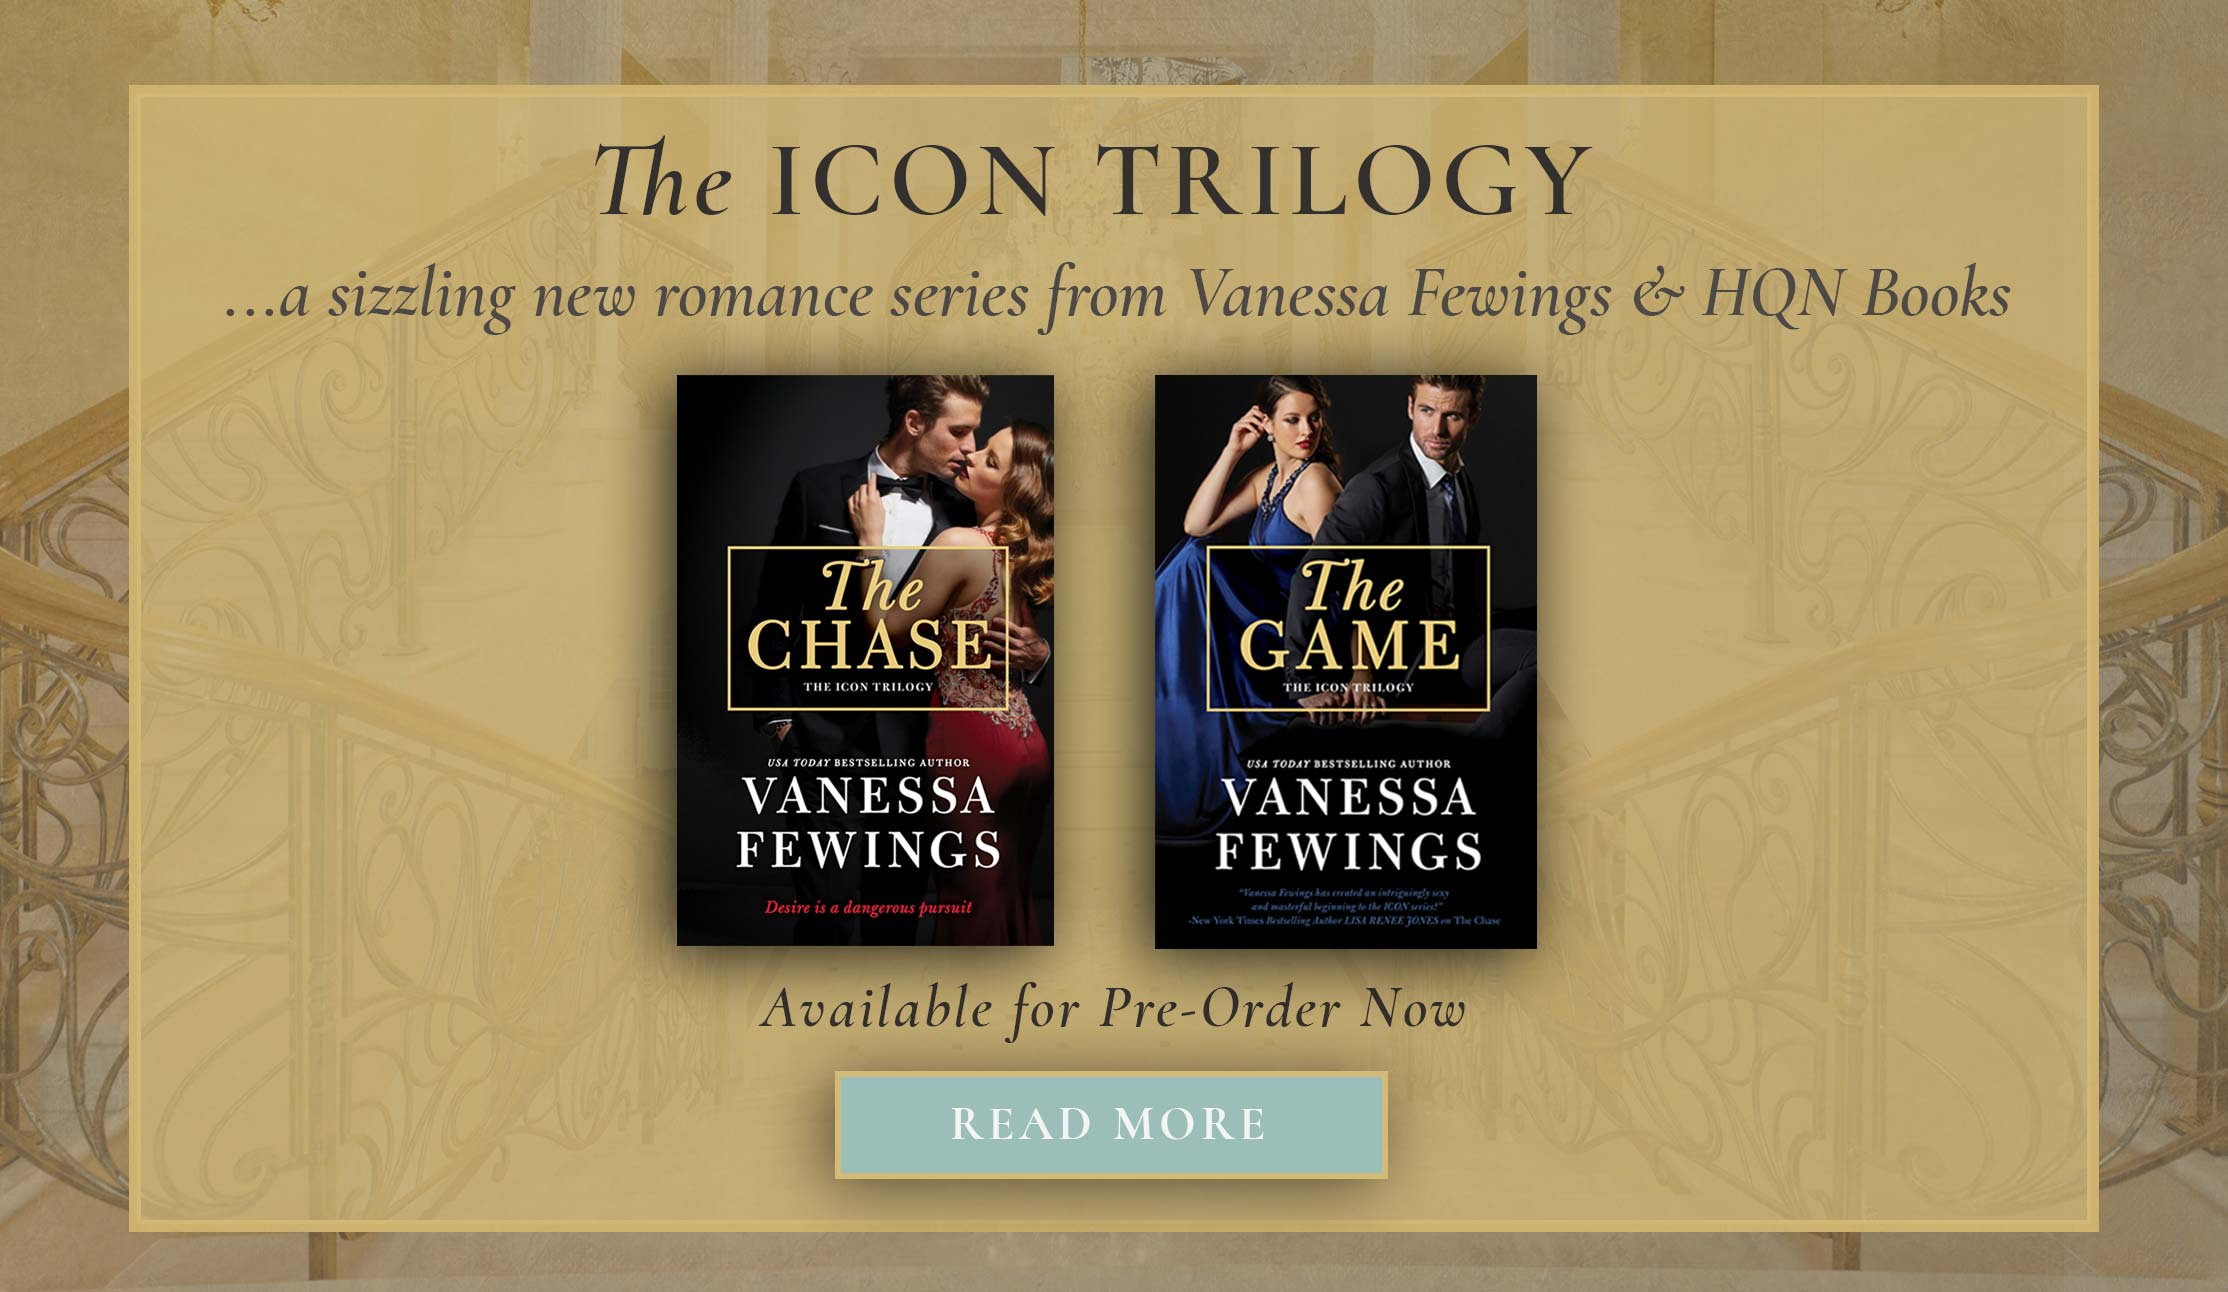 The Icon Trilogy by Vanessa Fewings